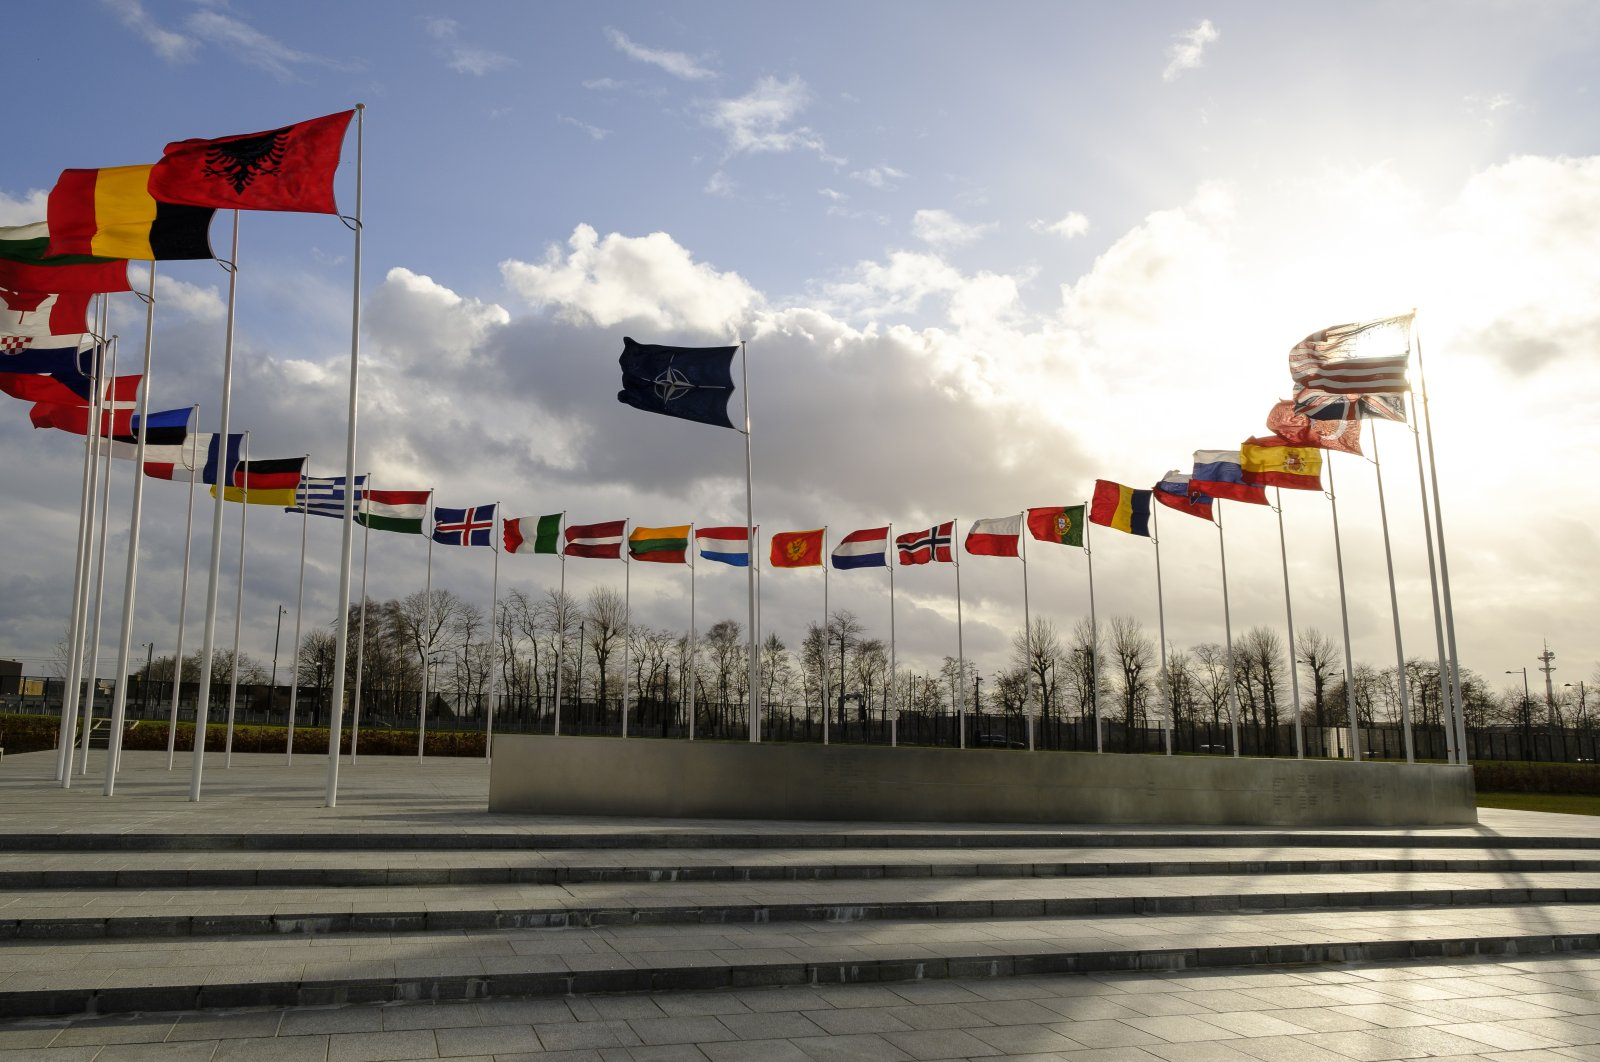 Flags line the sidewalk near the NATO headquarters in Brussels, Belgium, Feb. 11, 2020. (Photo by Getty Images)